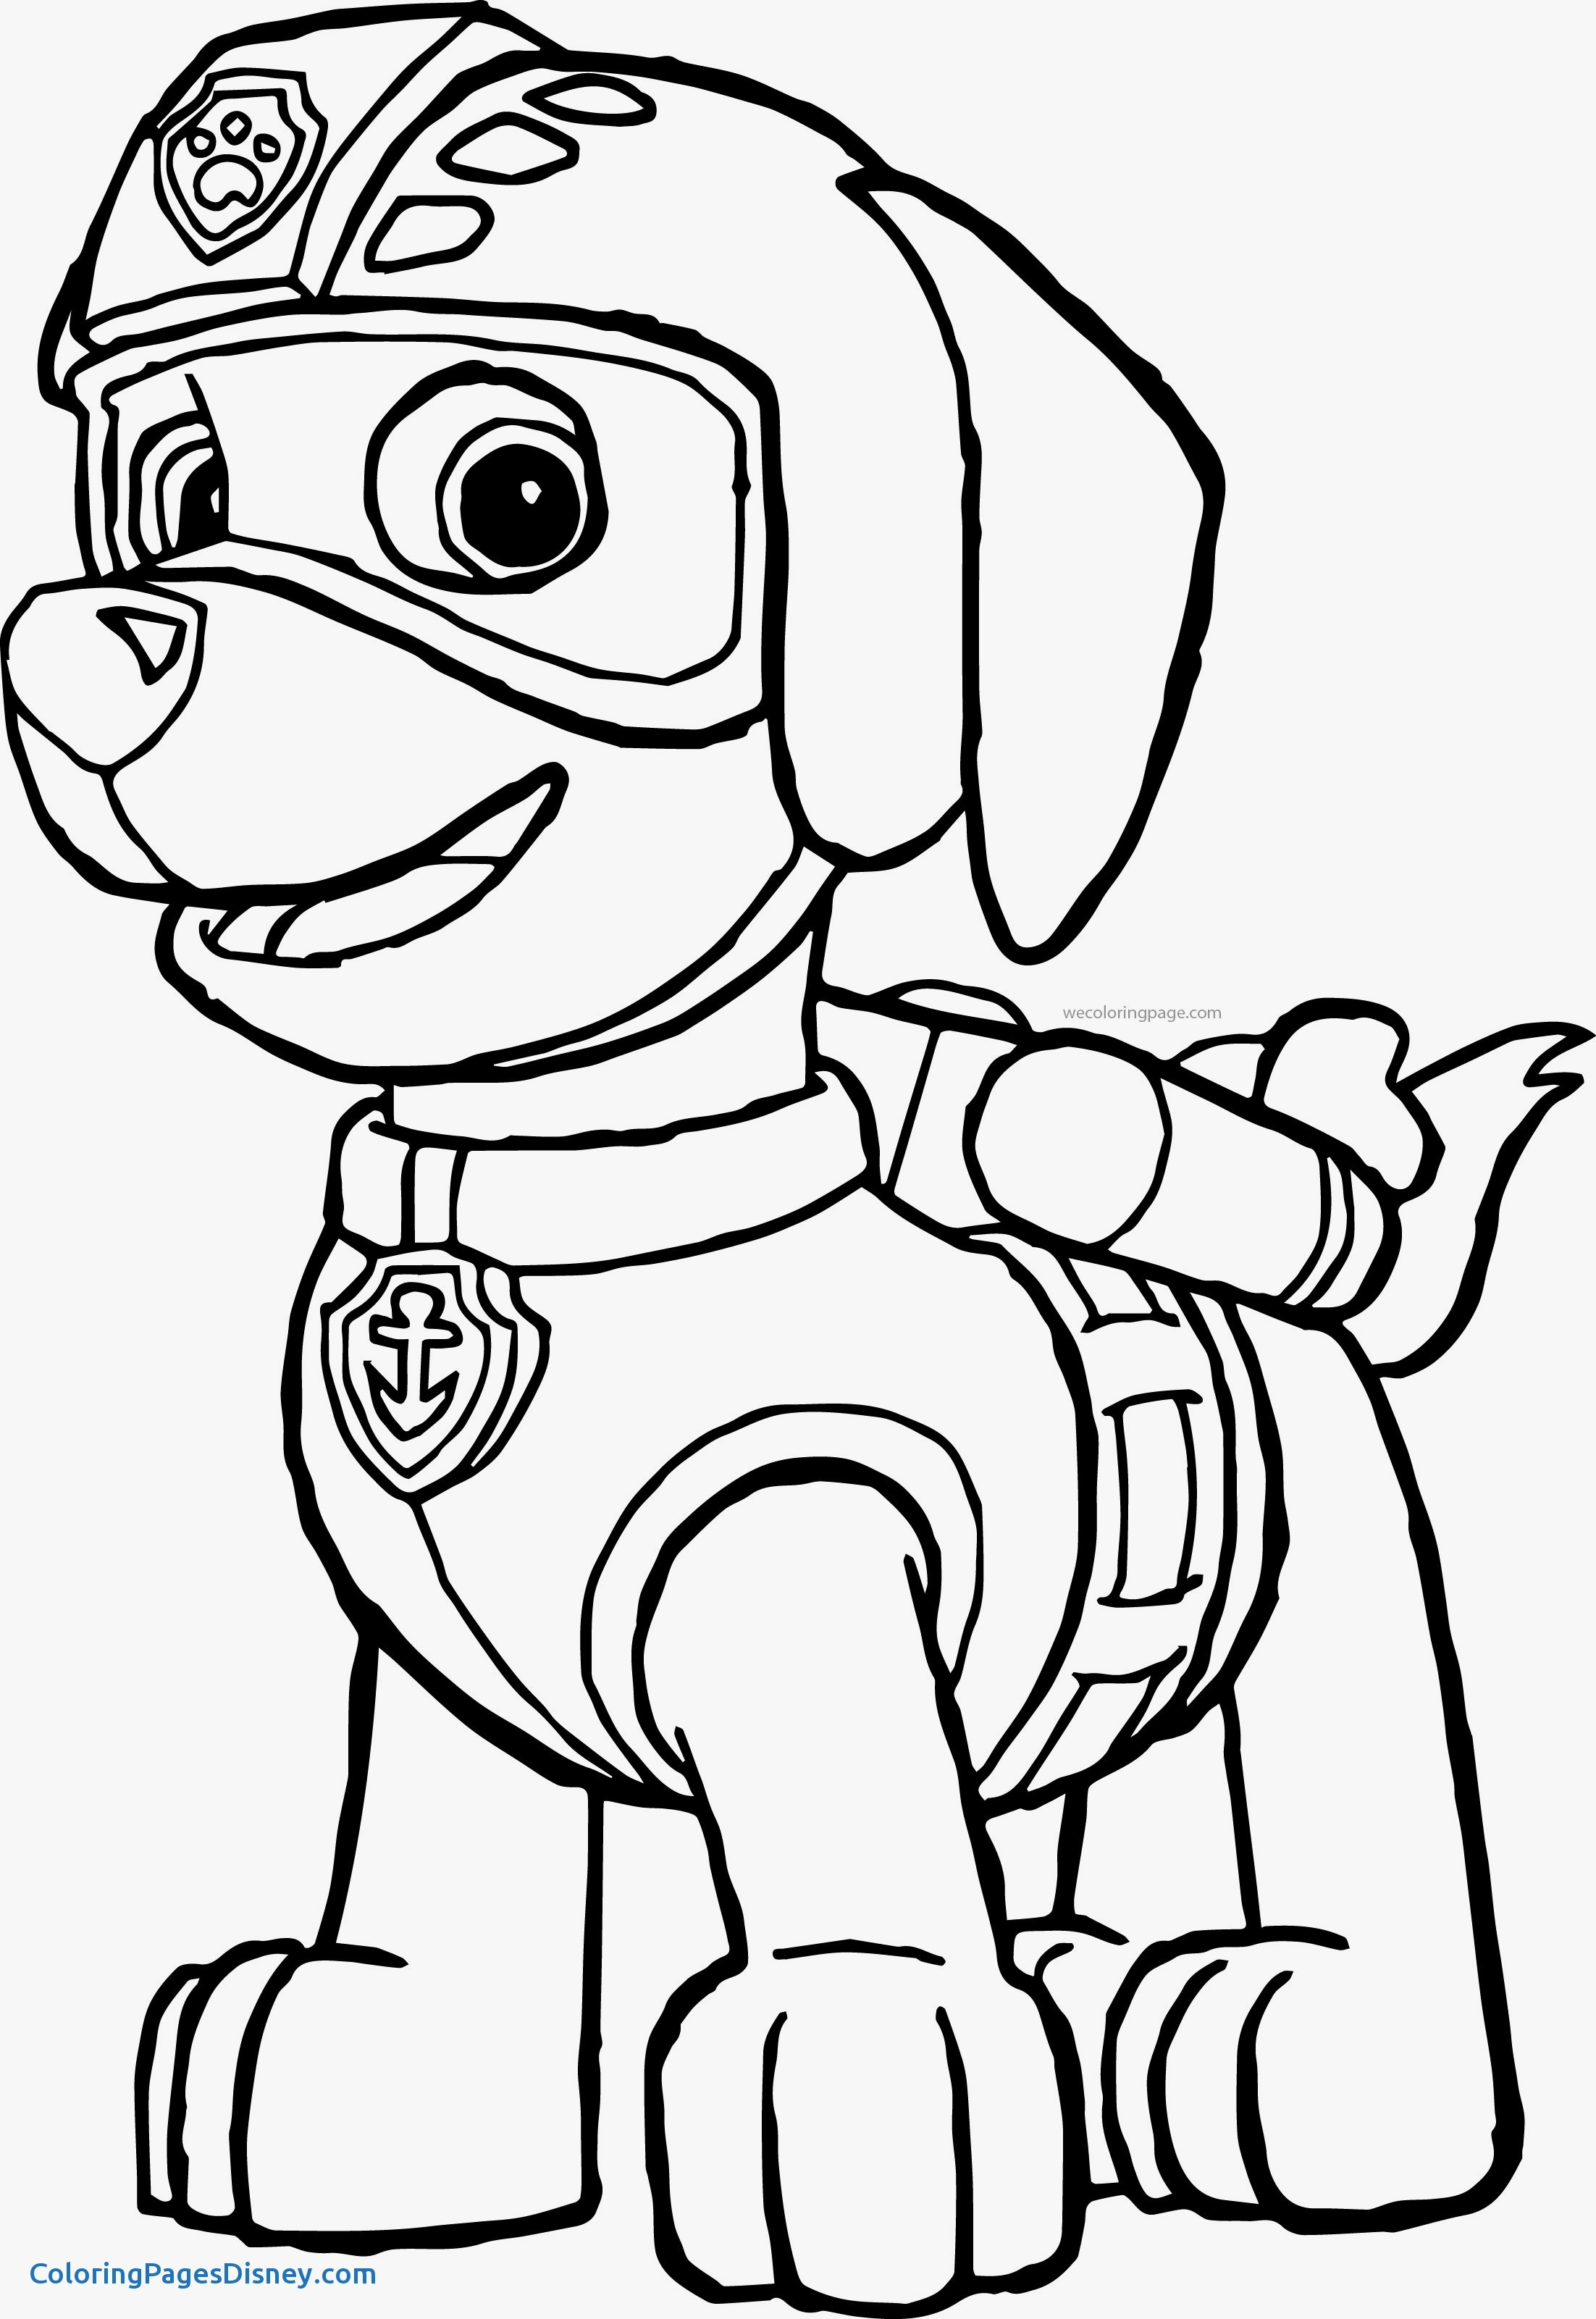 Paw Patrol Coloring Pages Games